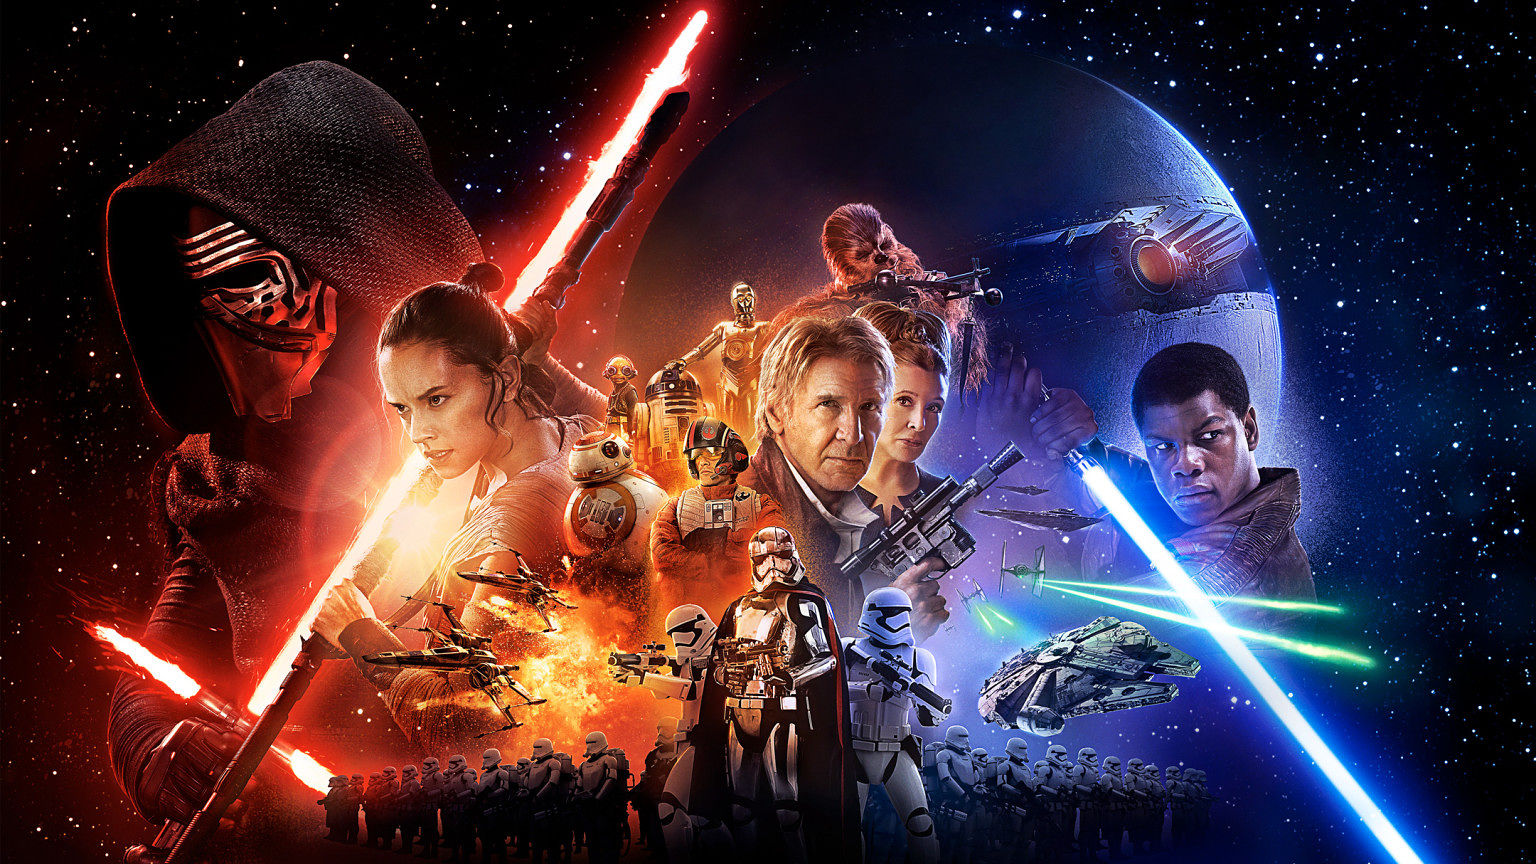 7-crucial-clues-you-may-have-missed-in-the-star-wars-force-awakens-trailer-3-what-you-m-674055.jpg